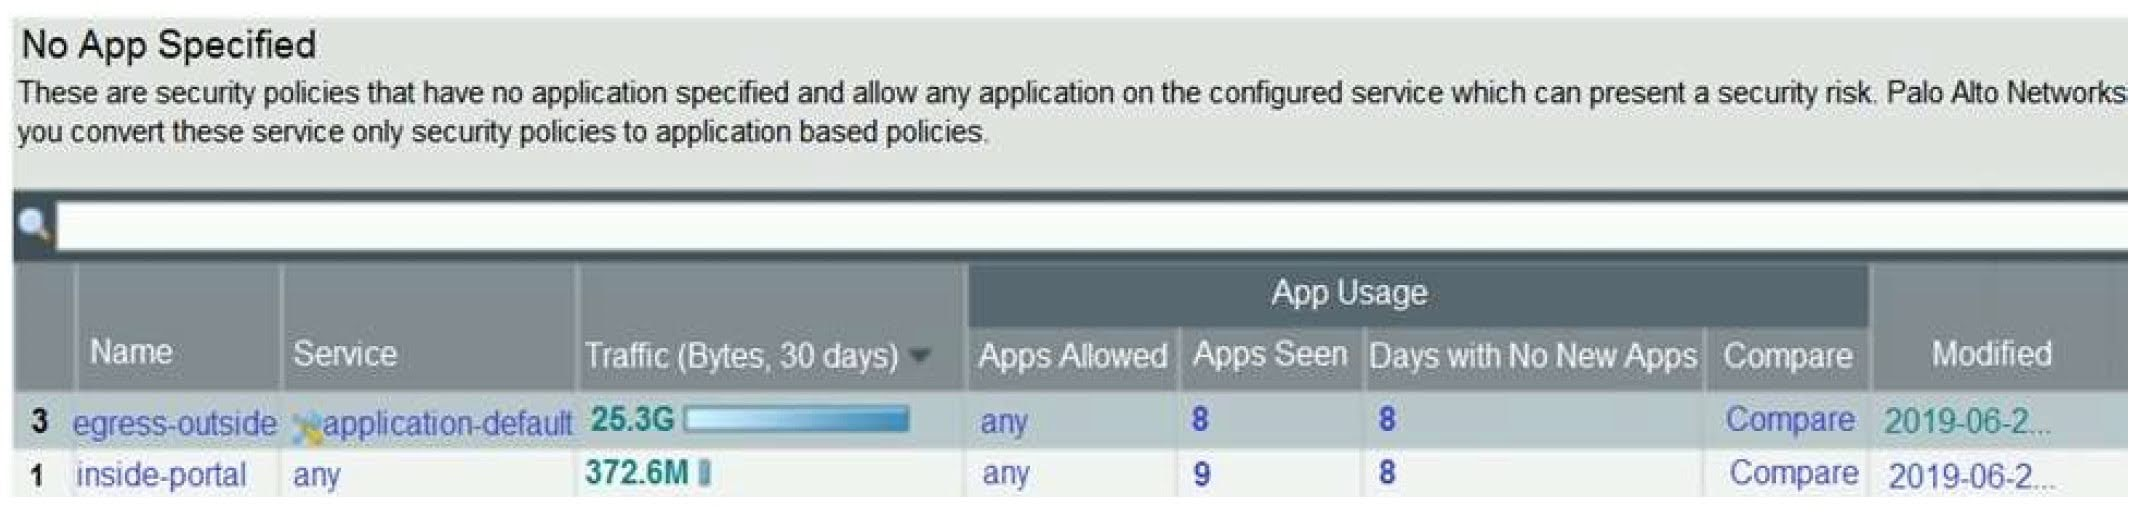 Based on the screenshot presented, which column contains the link that when clicked, opens a window to display all applications matched to the policy rule?